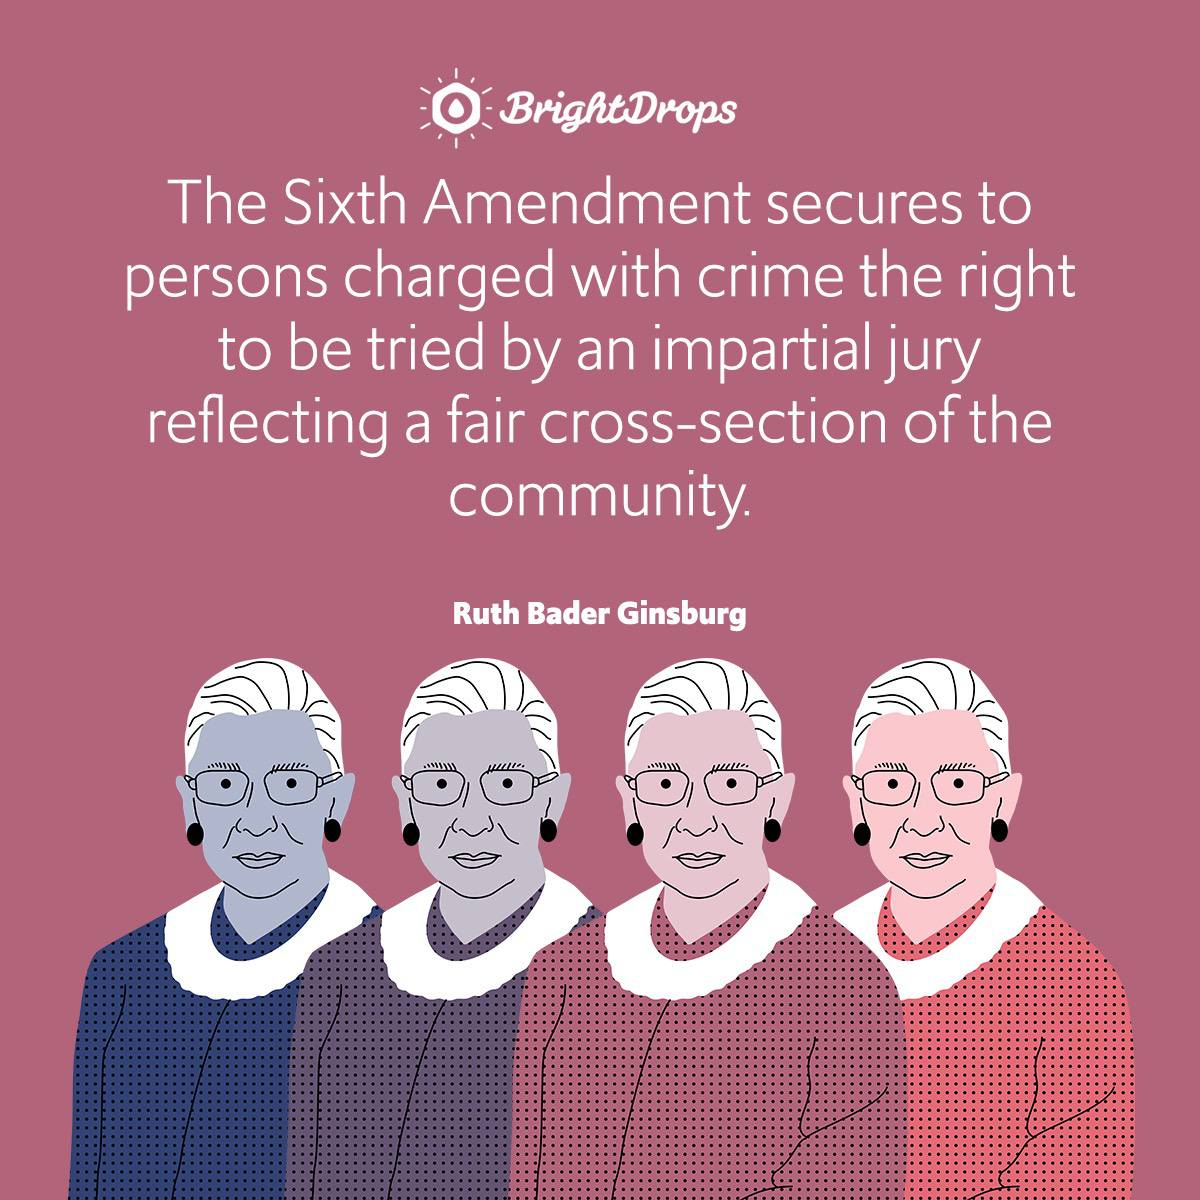 The Sixth Amendment secures to persons charged with crime the right to be tried by an impartial jury reflecting a fair cross-section of the community.